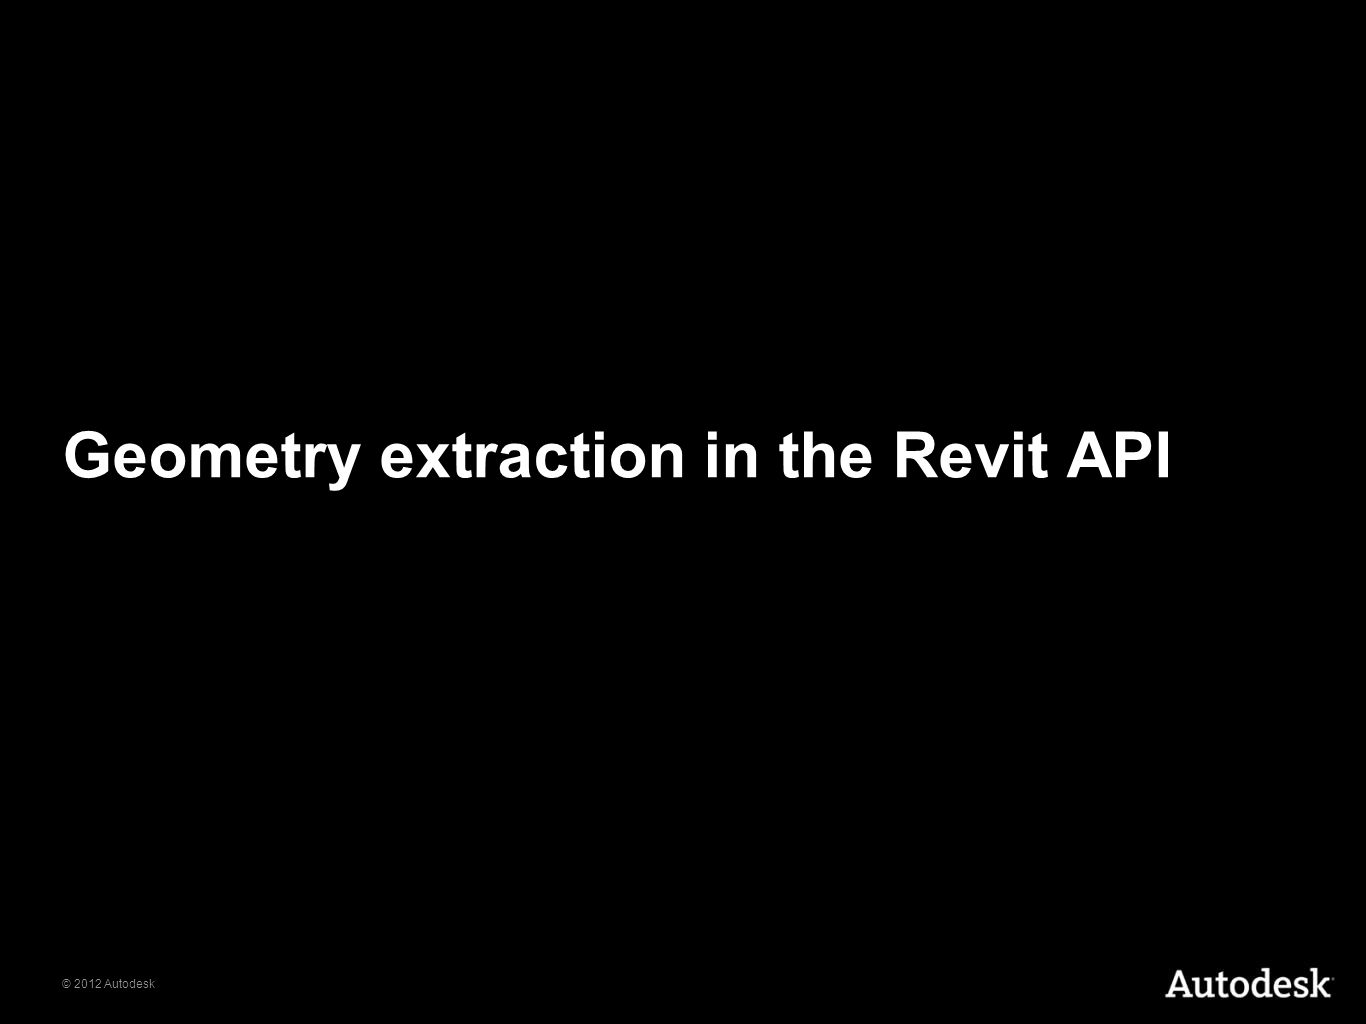 Geometry extraction in the Revit API